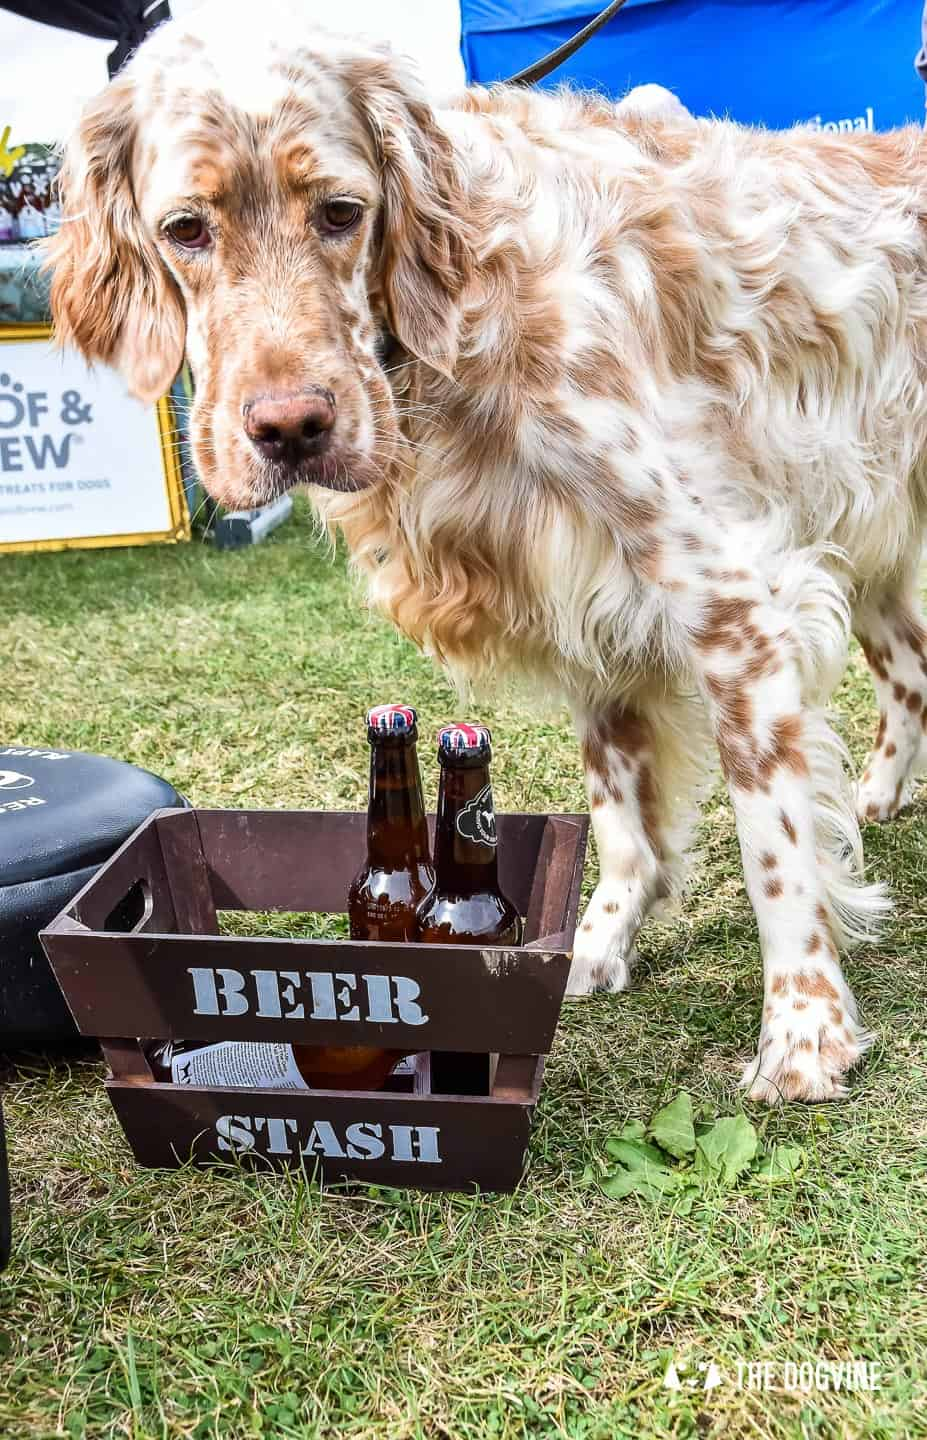 What to Take to a Dog Festival Checklist - Dog Drinking Beer